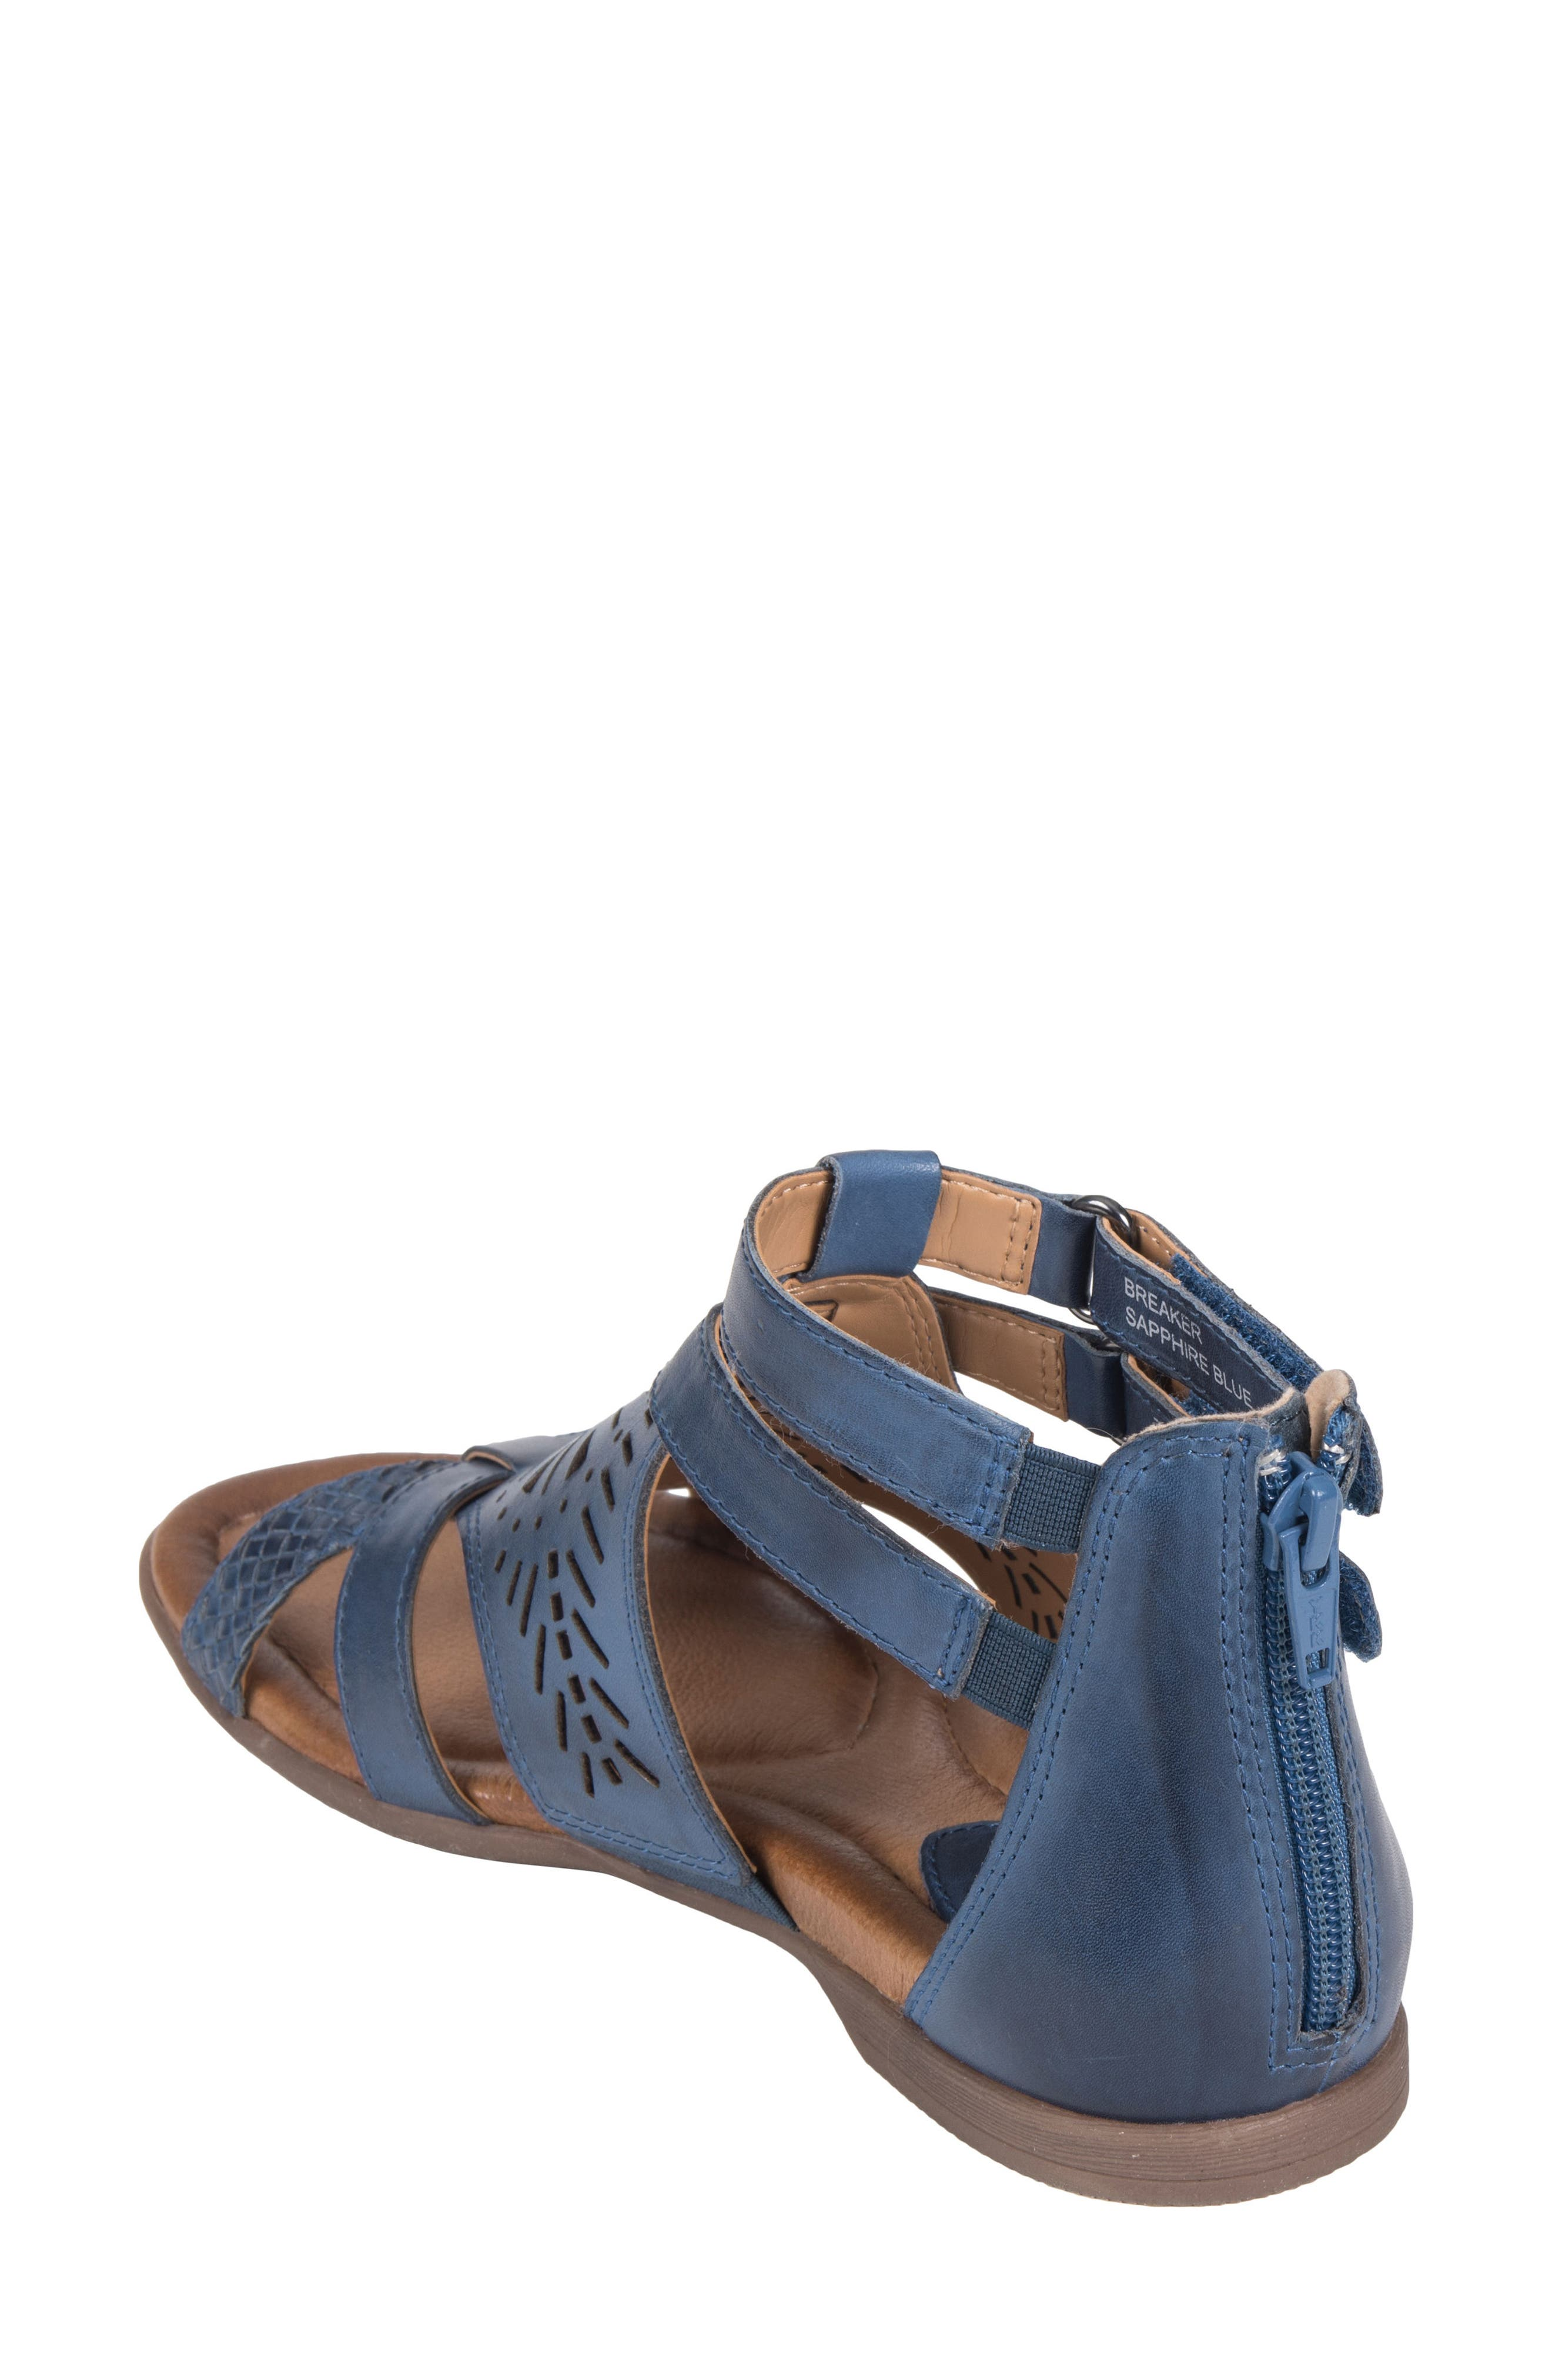 Breaker Sandal,                             Alternate thumbnail 2, color,                             SAPPHIRE BLUE LEATHER